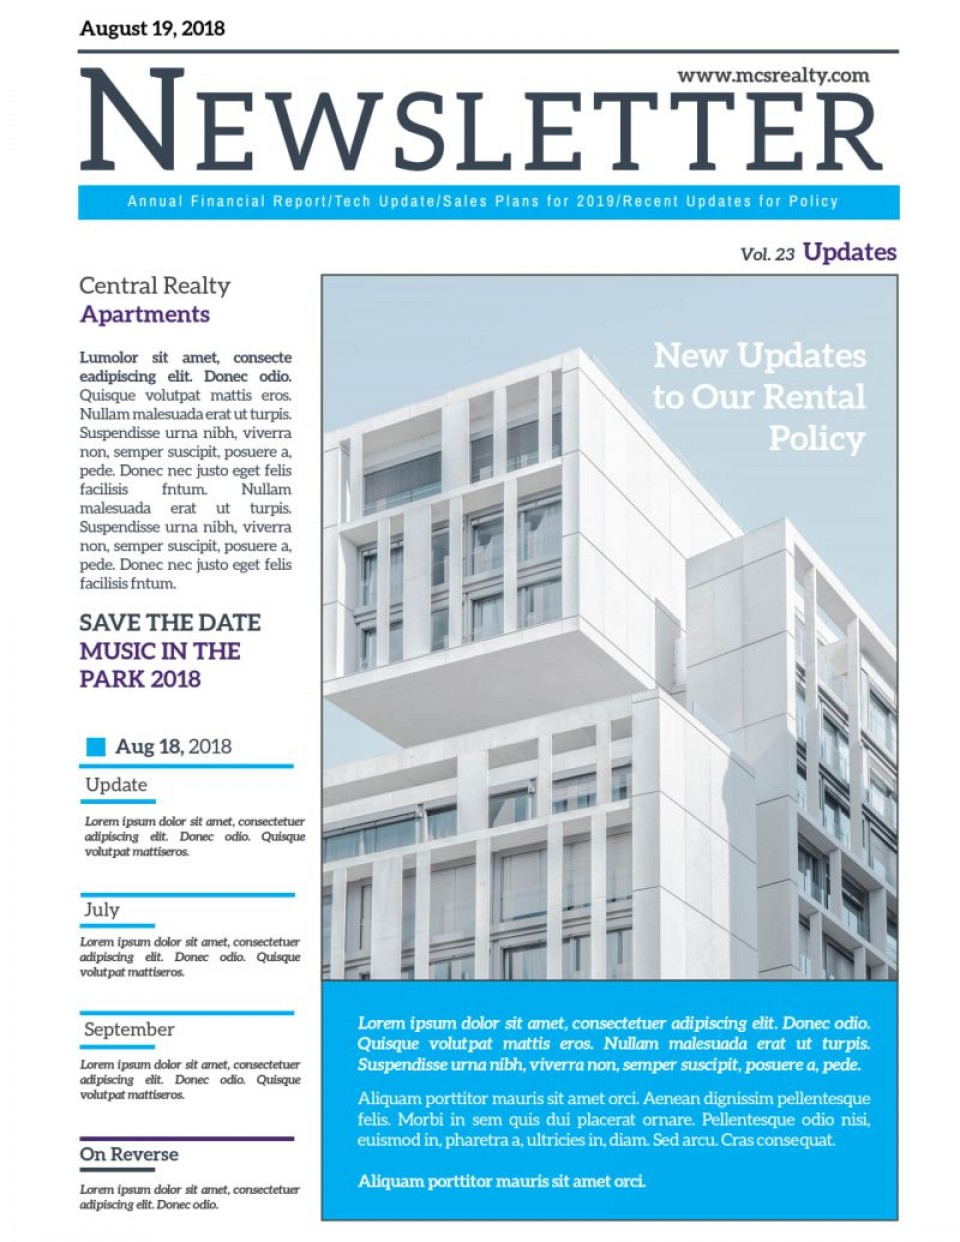 004 Astounding Real Estate Newsletter Template Design  Free Mailchimp960